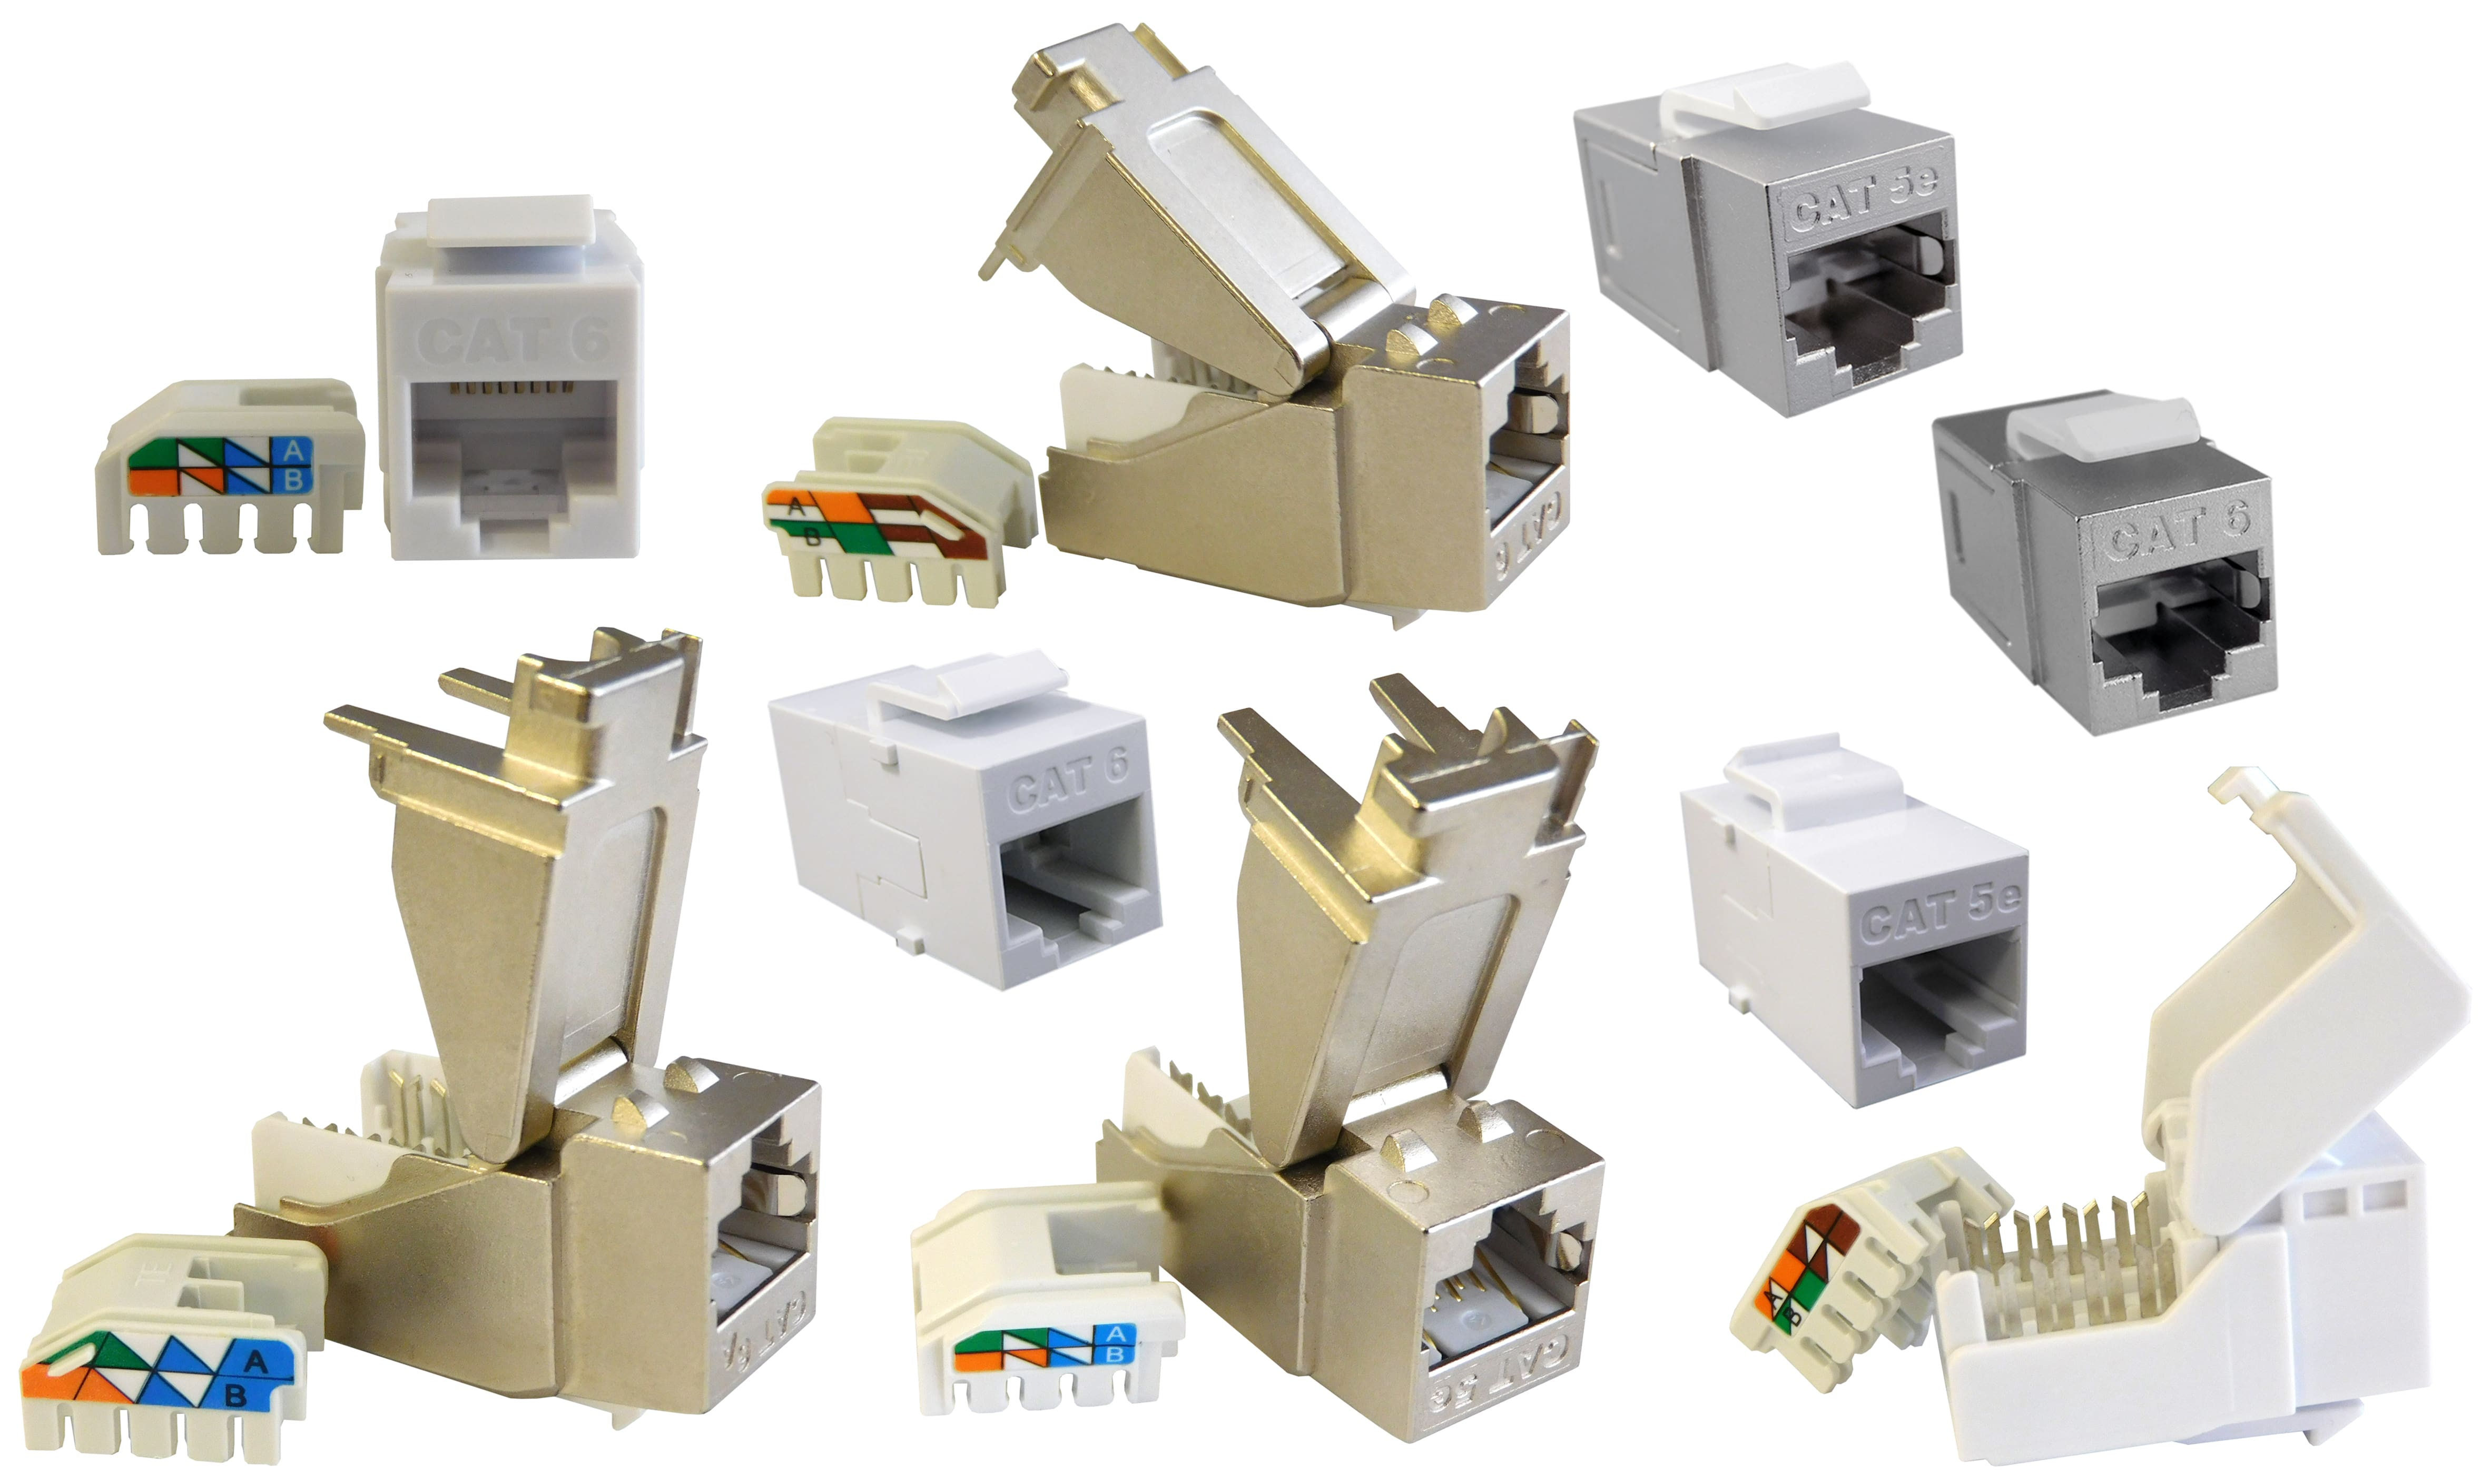 bel s cat5e cat6 and cat6a toolless plastic keystone jacks and couplers in shielded and unshielded configurations [ 4729 x 2818 Pixel ]